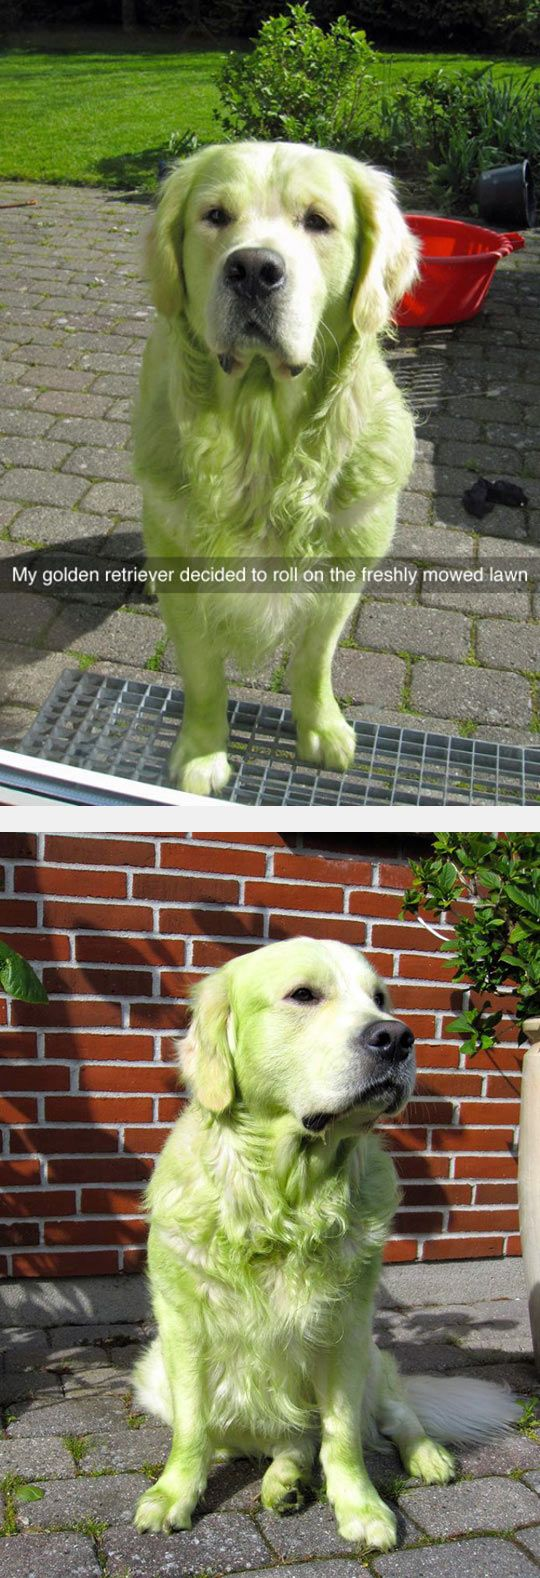 my dog does this only it isn't freshly mown grass he has been a rollin' in :/